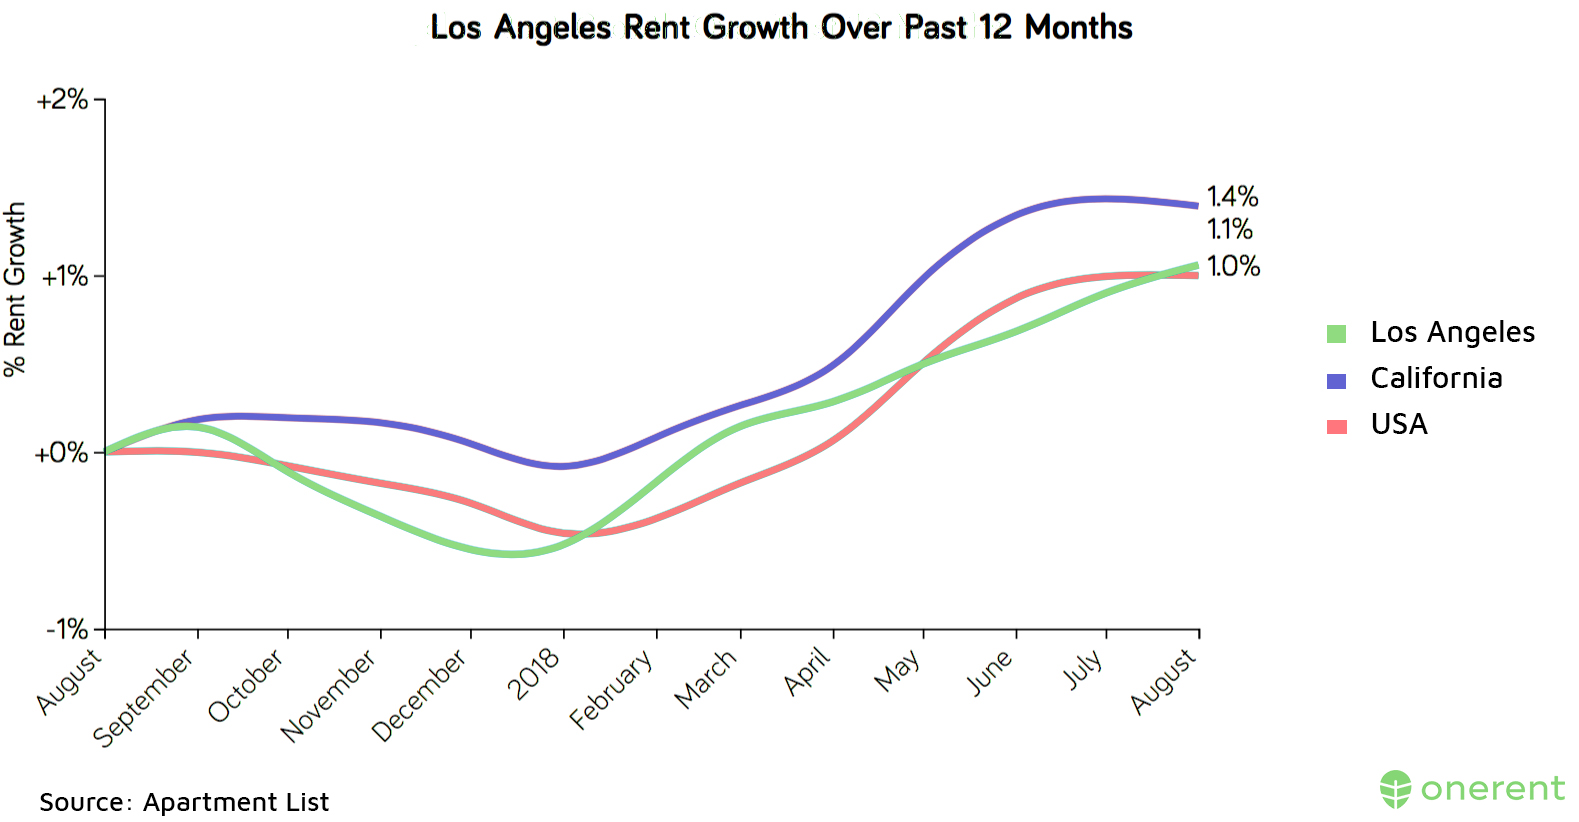 los-angeles-rent-growth-over-past-12-months